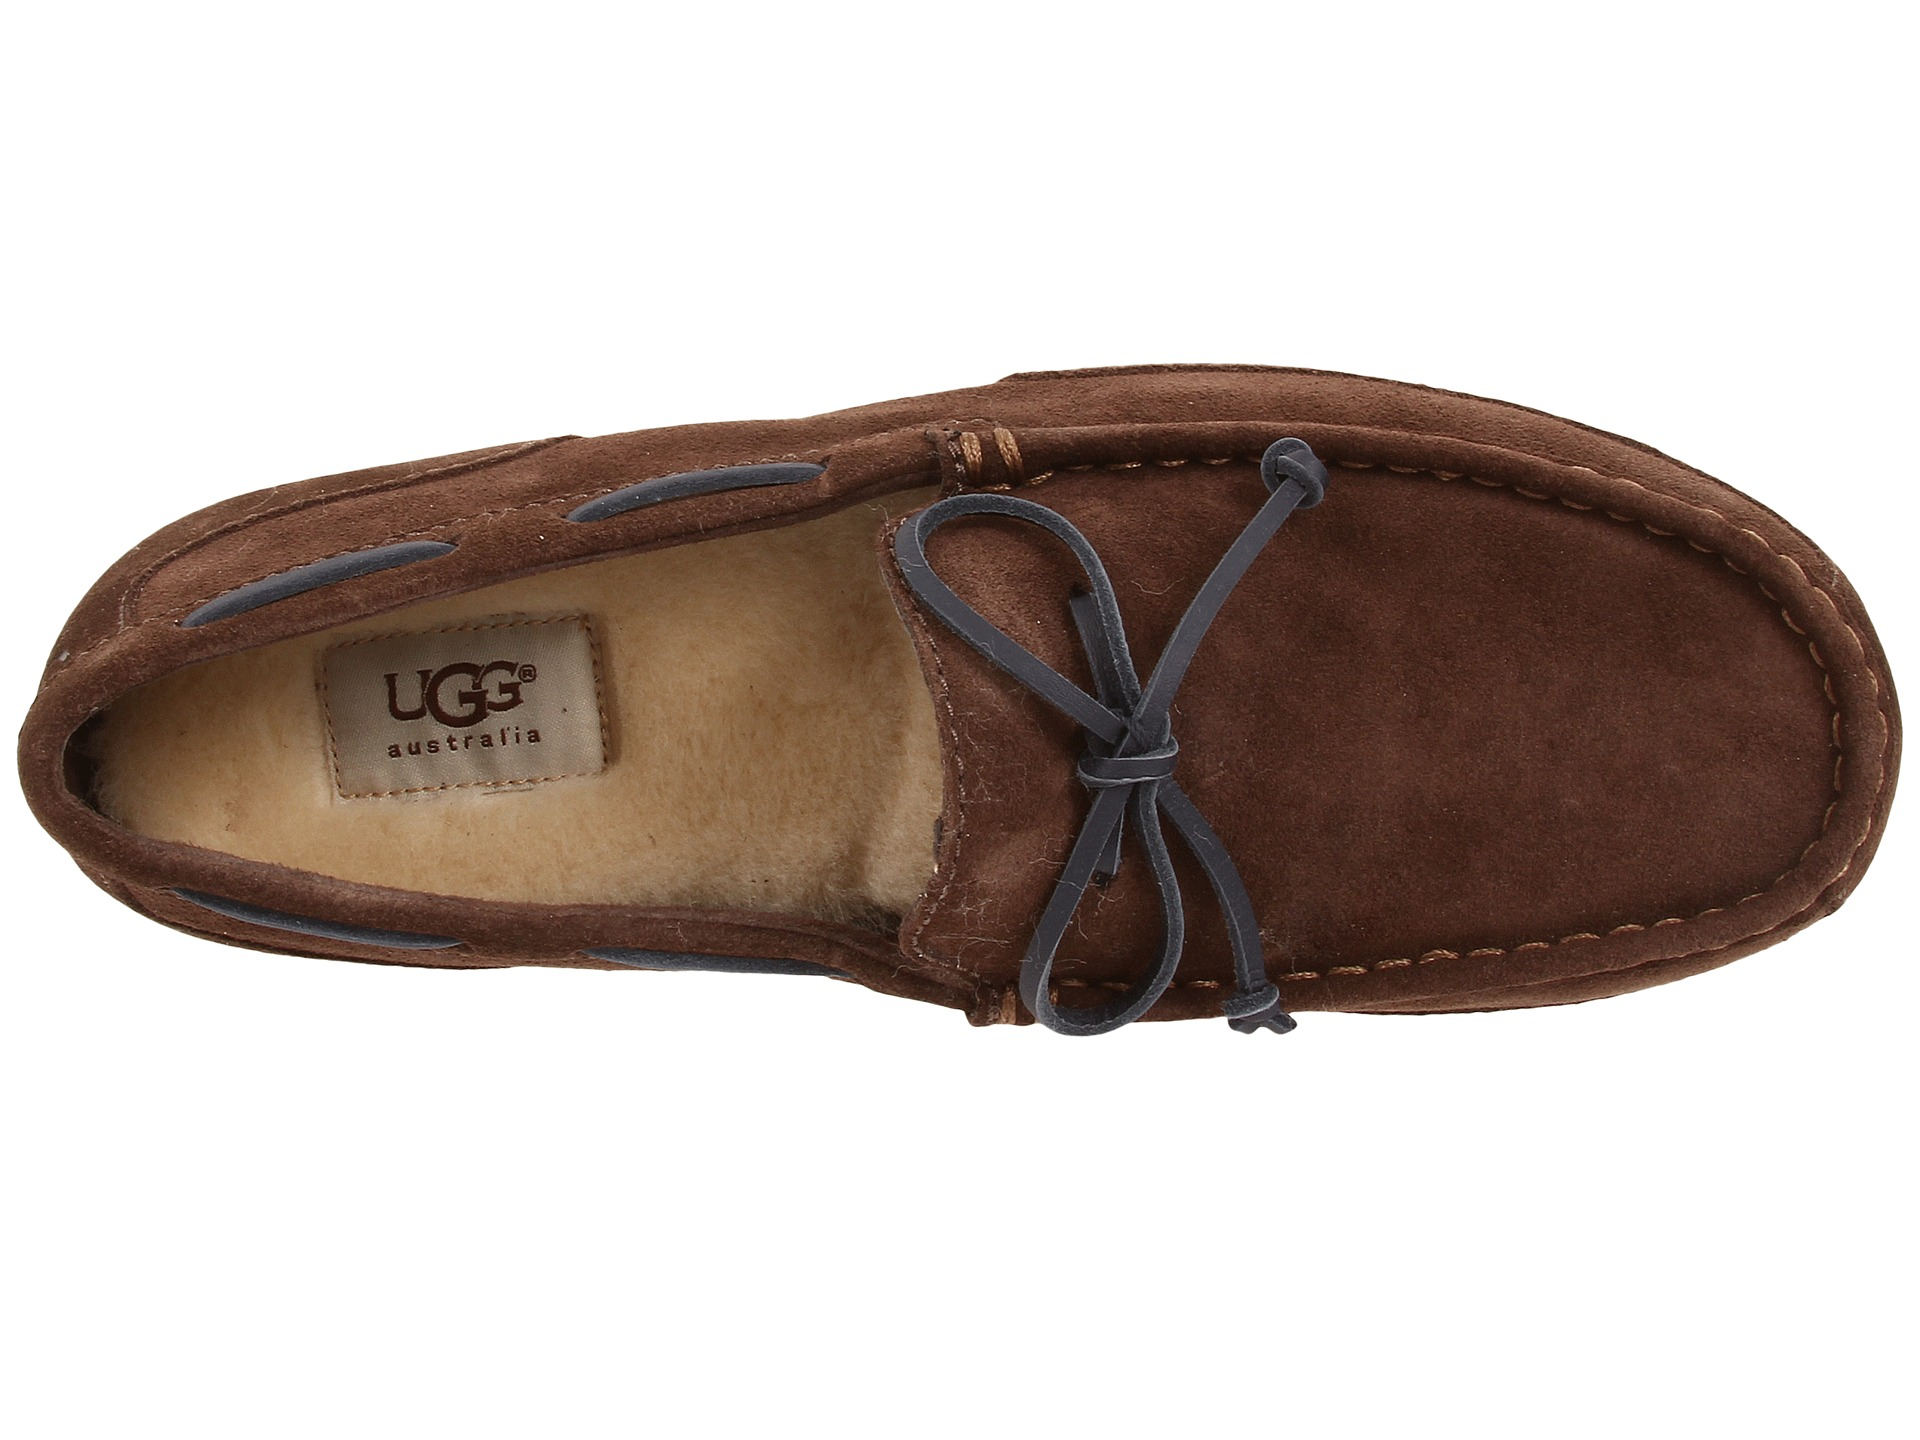 c48c395a423 Ugg Insoles Zappos - cheap watches mgc-gas.com